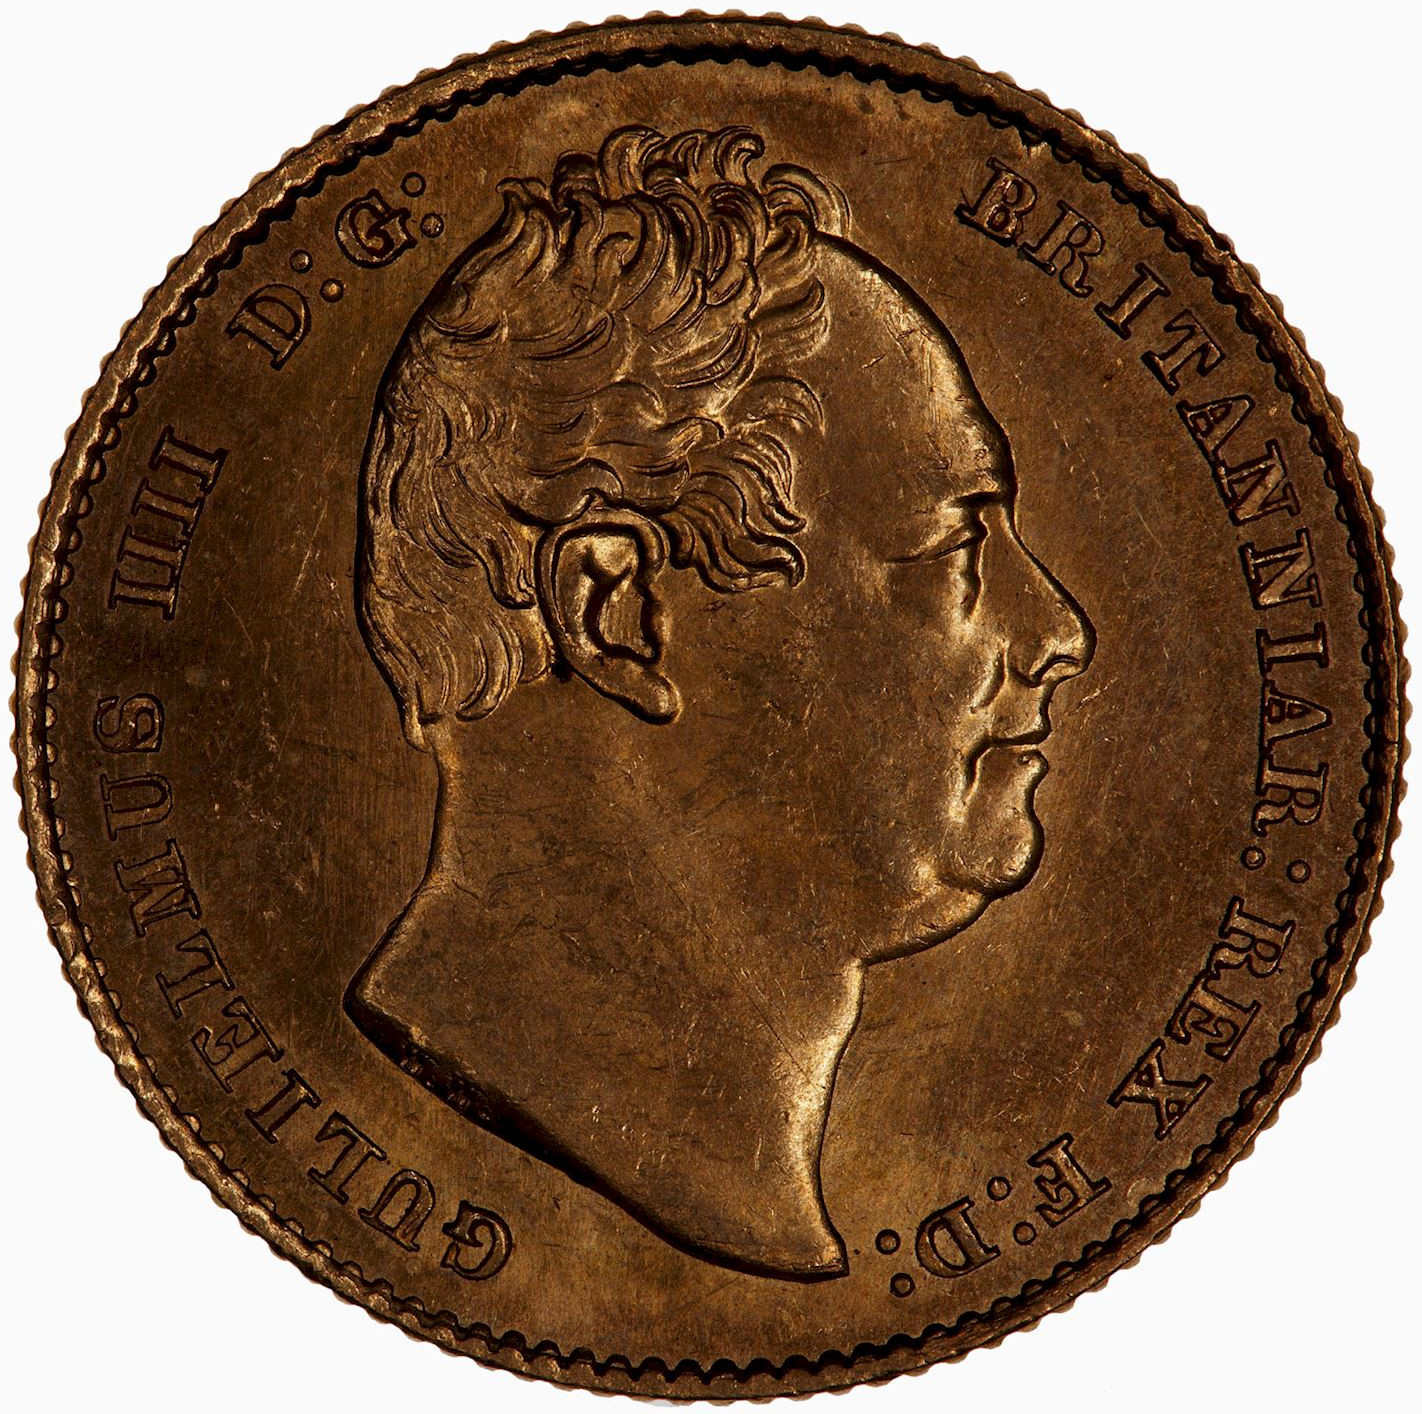 Sovereign 1833: Photo Coin - Sovereign, William IV, Great Britain, 1833